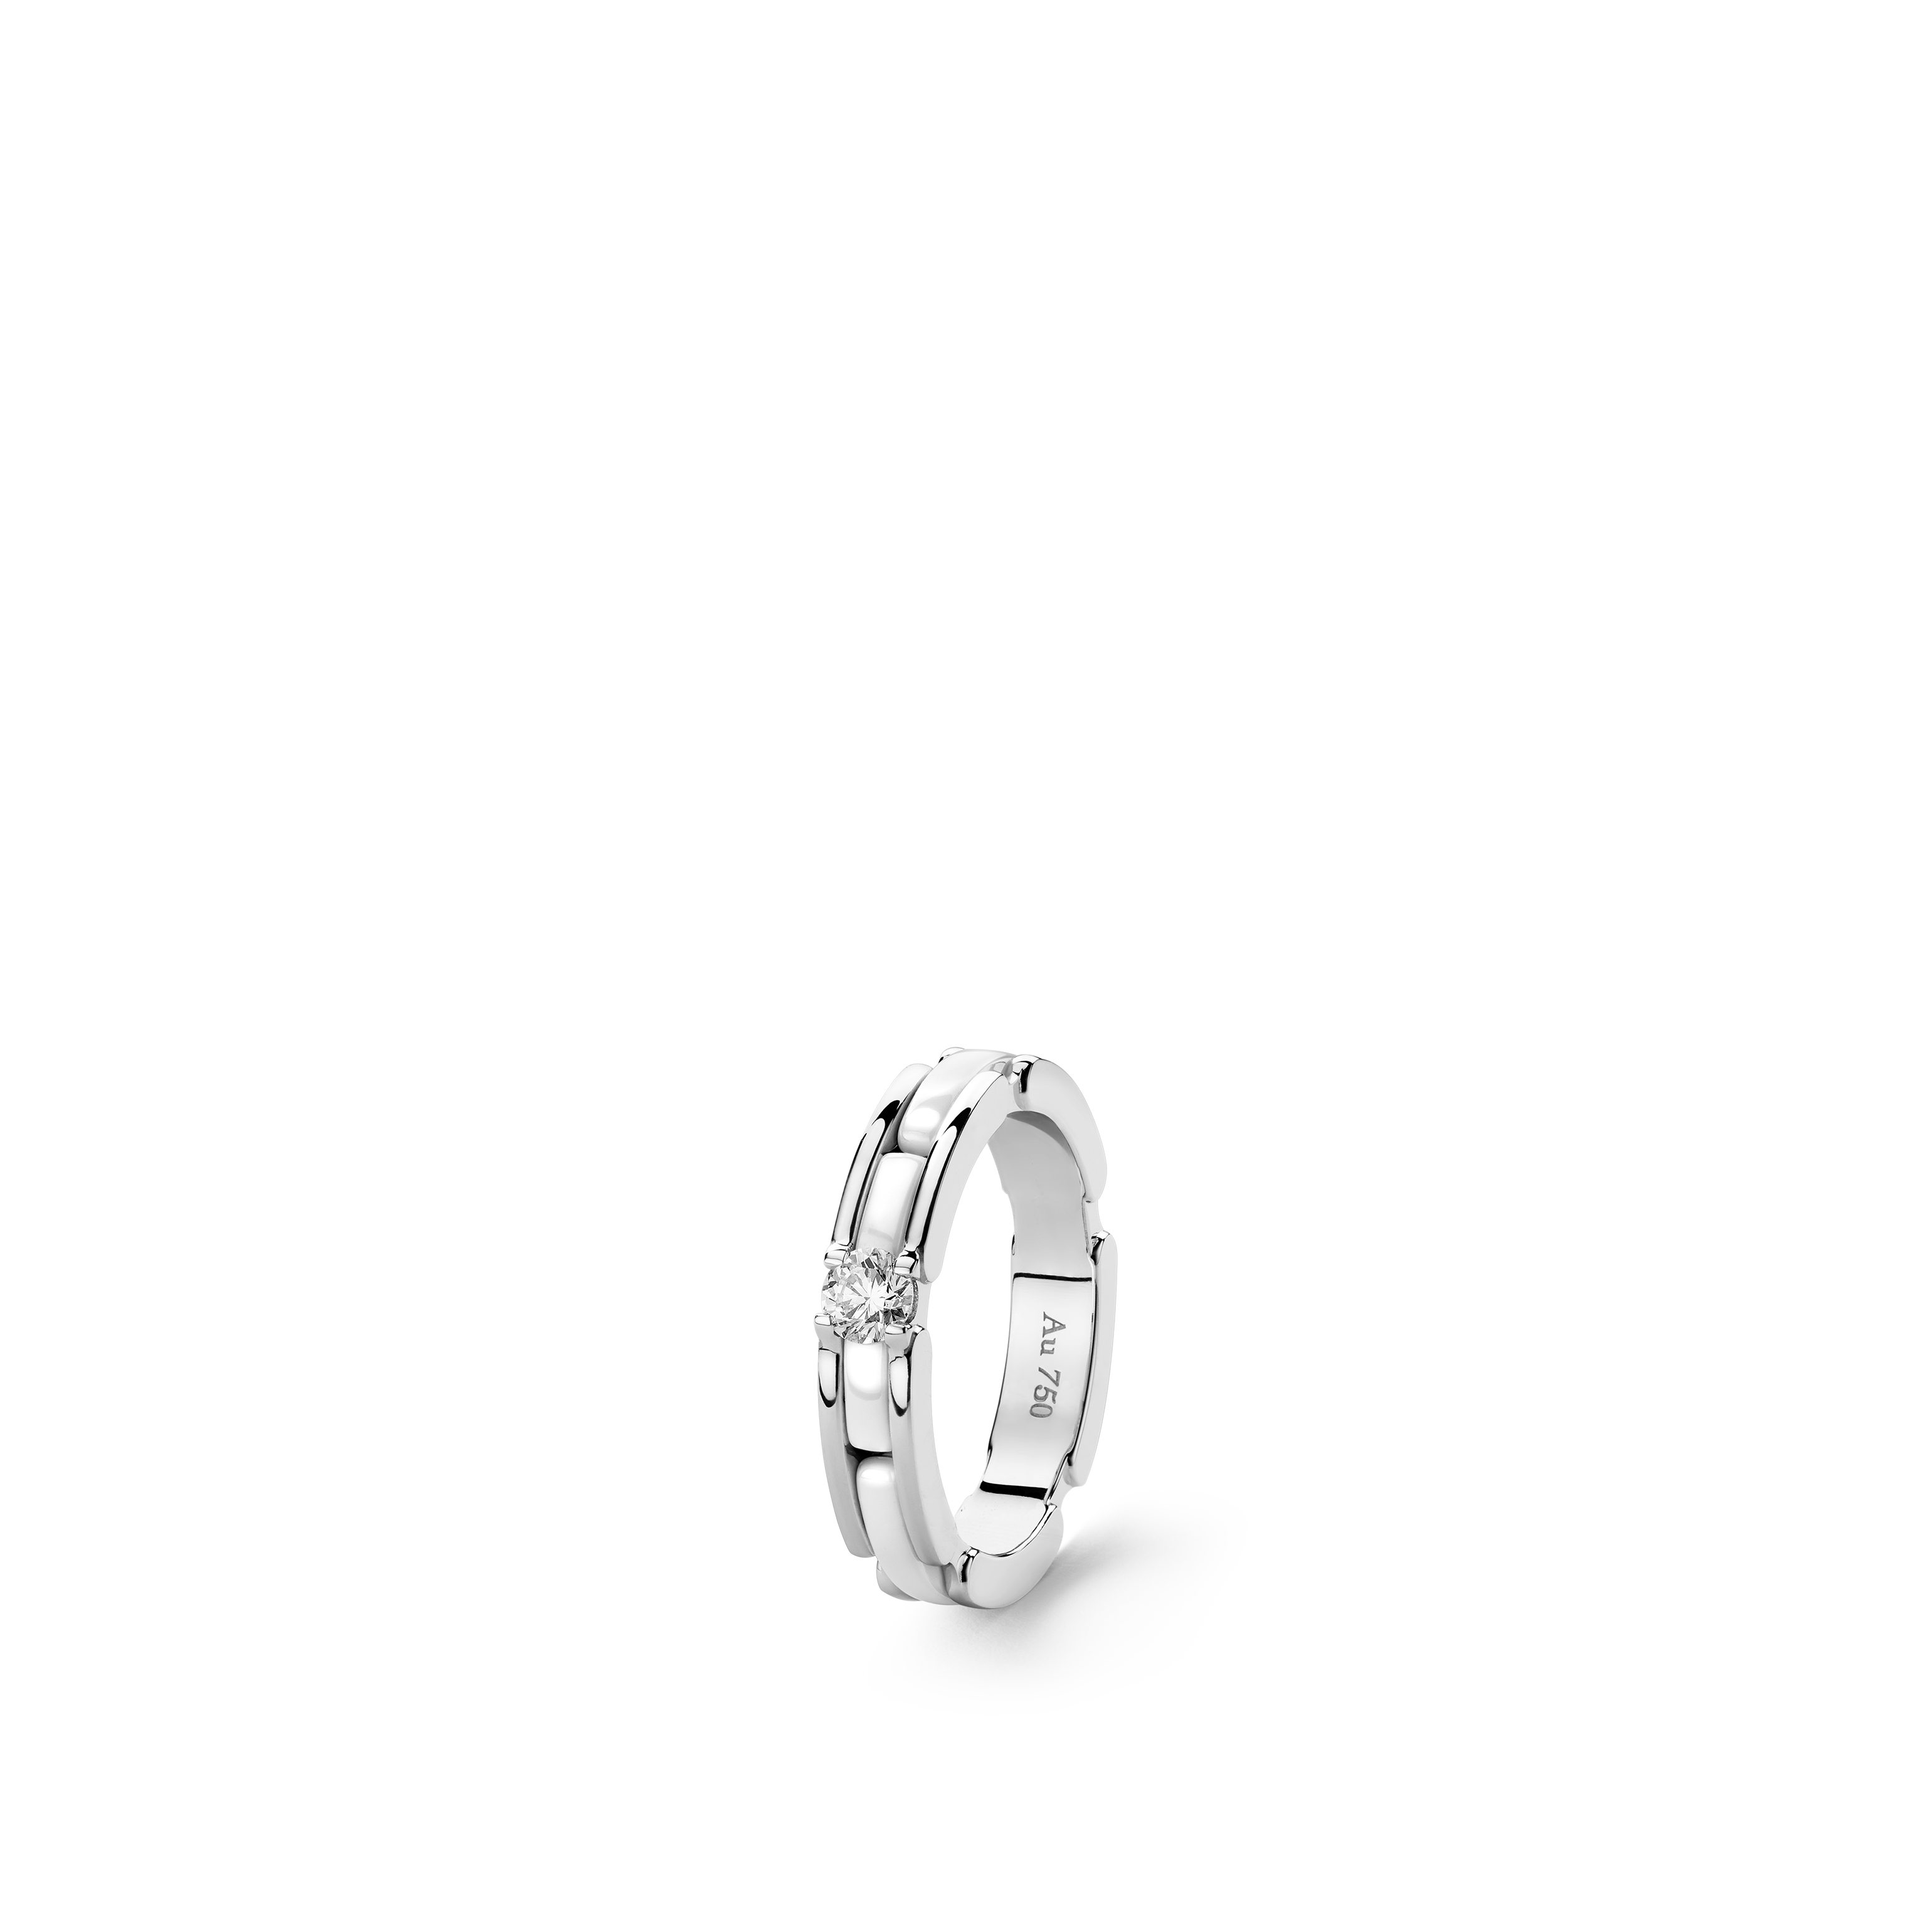 Ultra ring - Small version, 18K white gold, centre diamond, white ceramic - CHANEL - Default view - see standard sized version